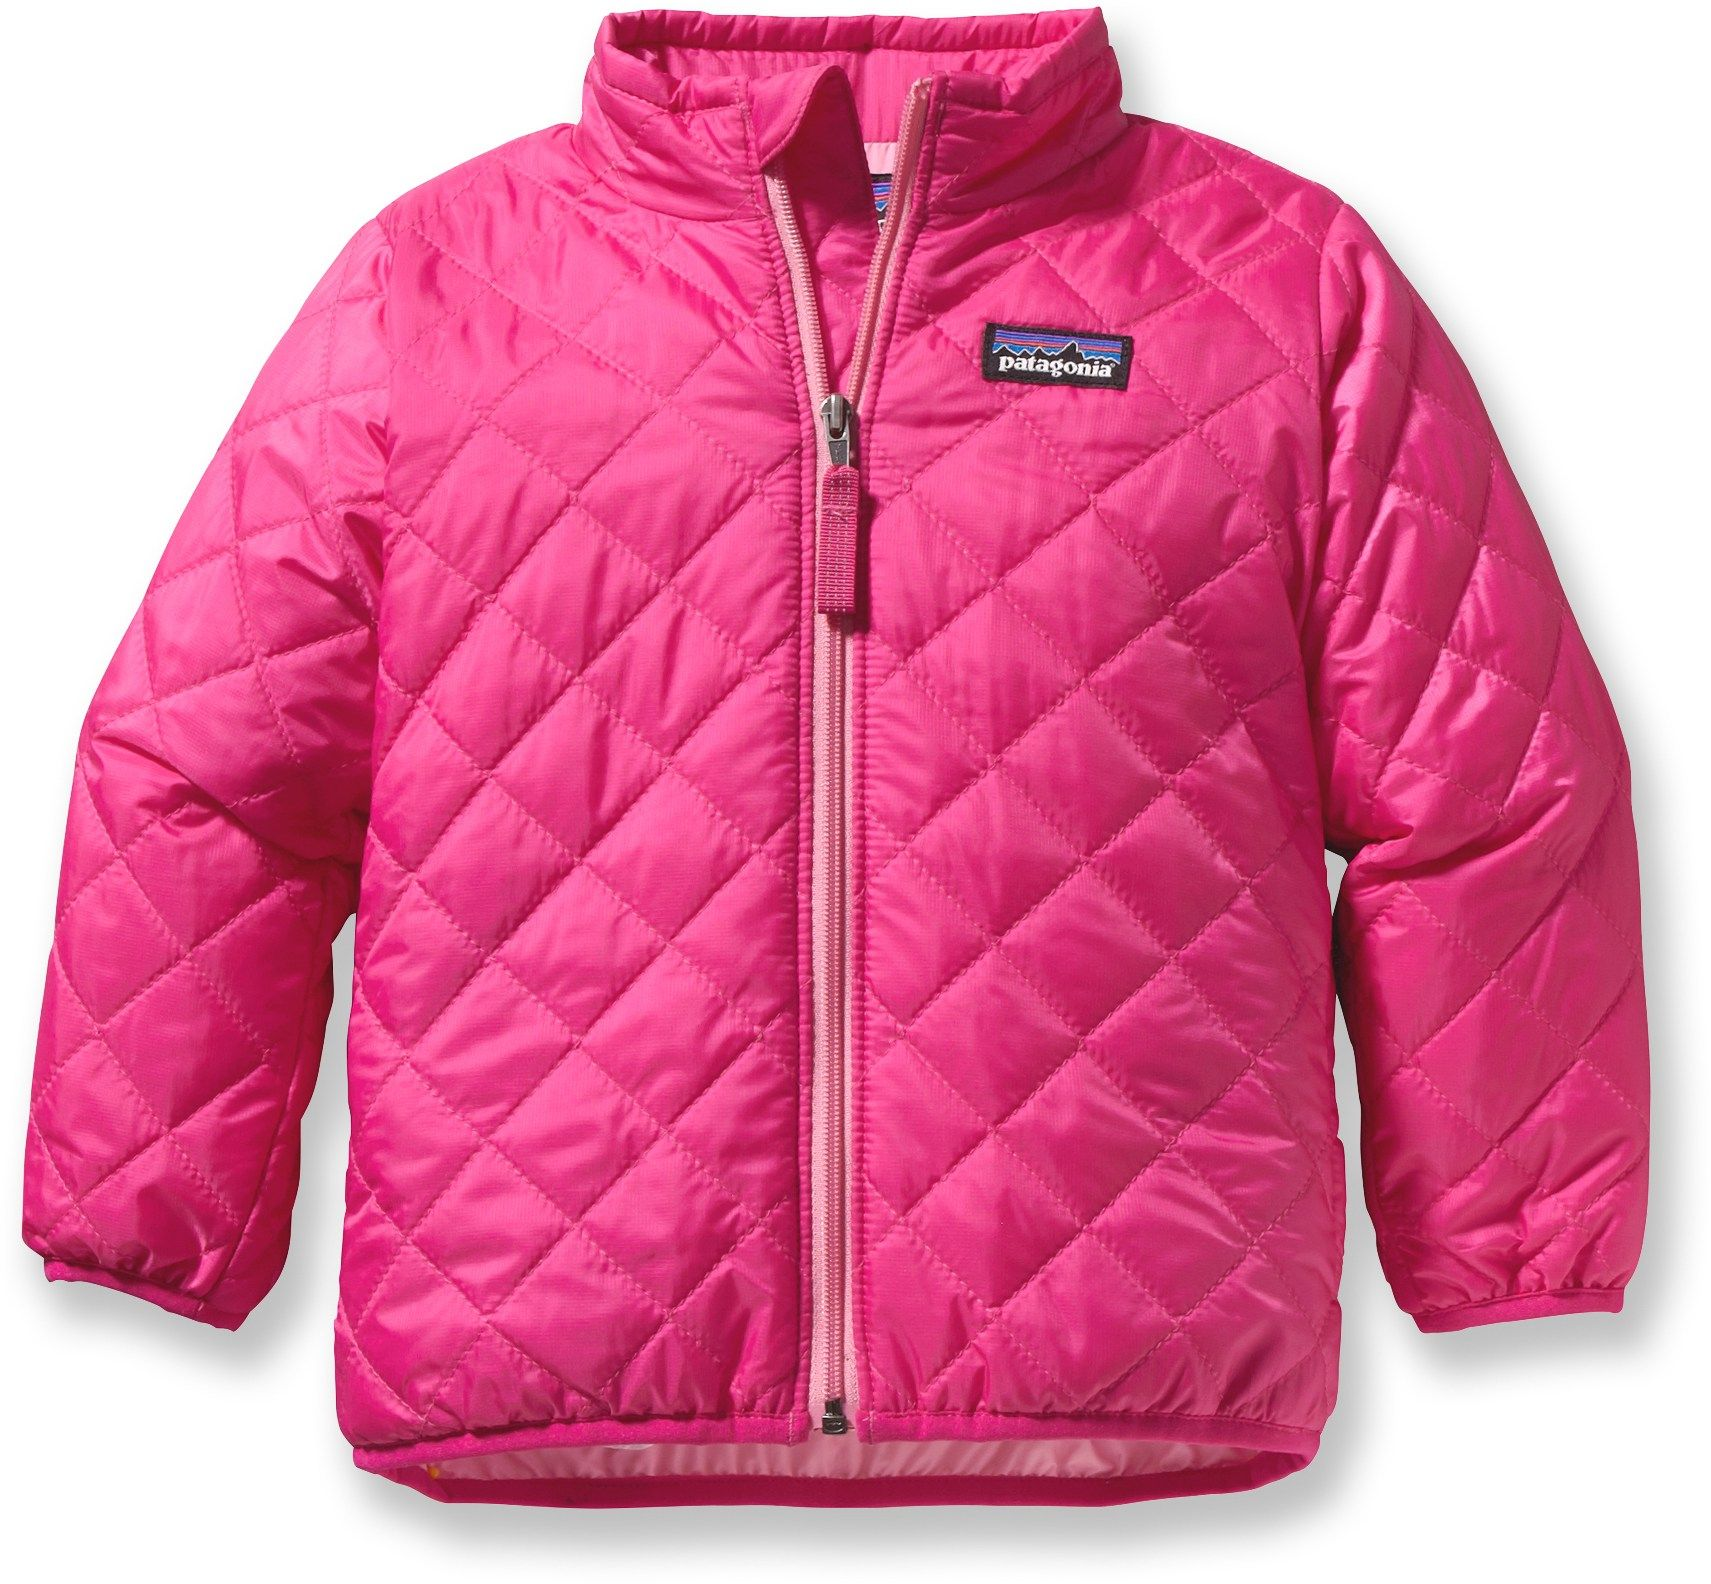 52b8bff10c54 Patagonia Female Baby Nano Puff Insulated Jacket - Infant Toddler ...